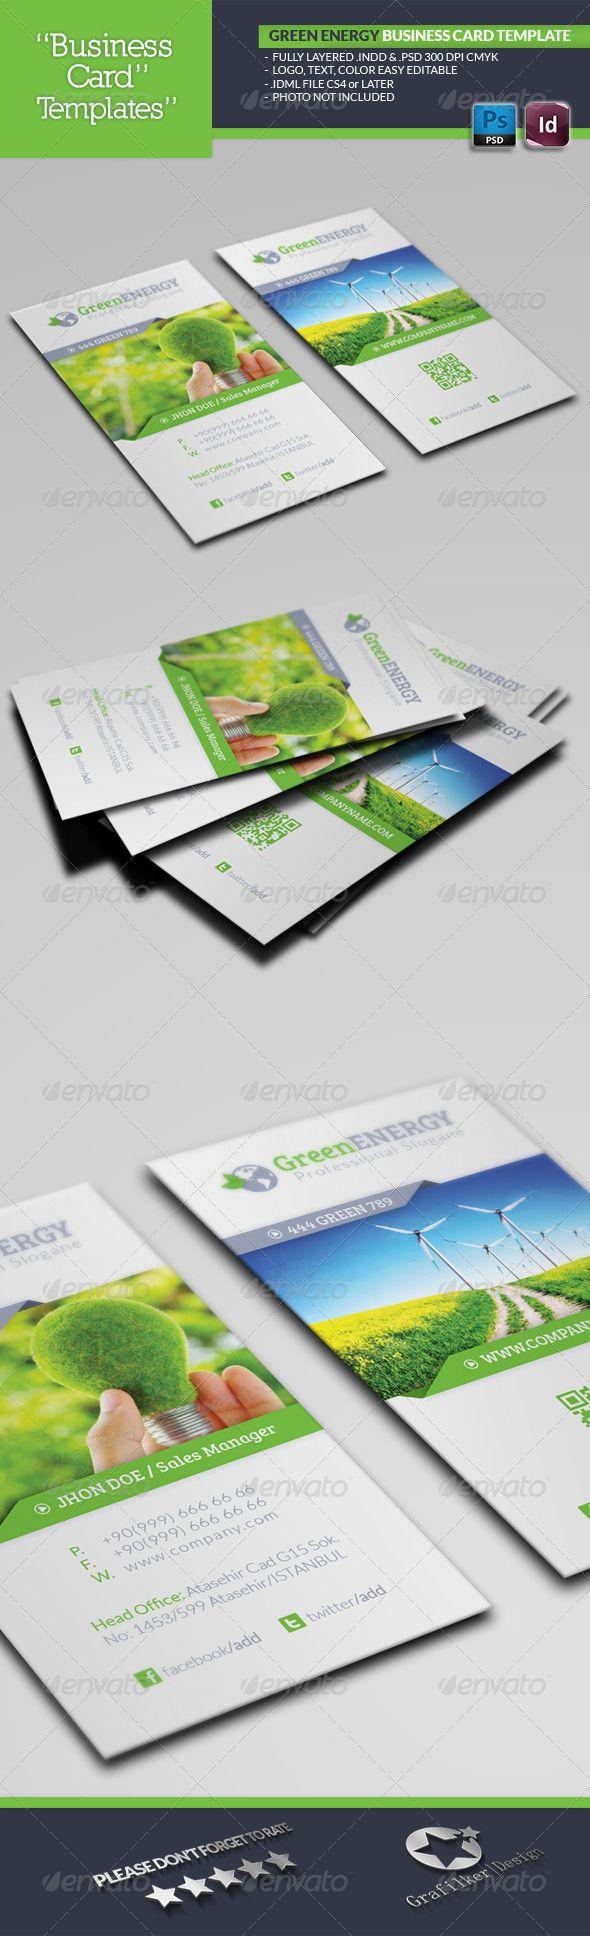 Green Energy Business Card Template #GraphicRiver Green Energy Business Card Template Fully layered INDD Fully layered PSD 300 Dpi, CMYK IDML format open Indesign CS4 or later Completely editable, print ready Text/Font or Color can be altered as needed All Image are in vector format, so can customise easily Photos are not included in the file Font File: Lato Font: .fontsquirrel /fonts/lato Bree-serif: .fontsquirrel /fonts/bree-serif Help.txt file Created: 13June13 GraphicsFilesIncluded…